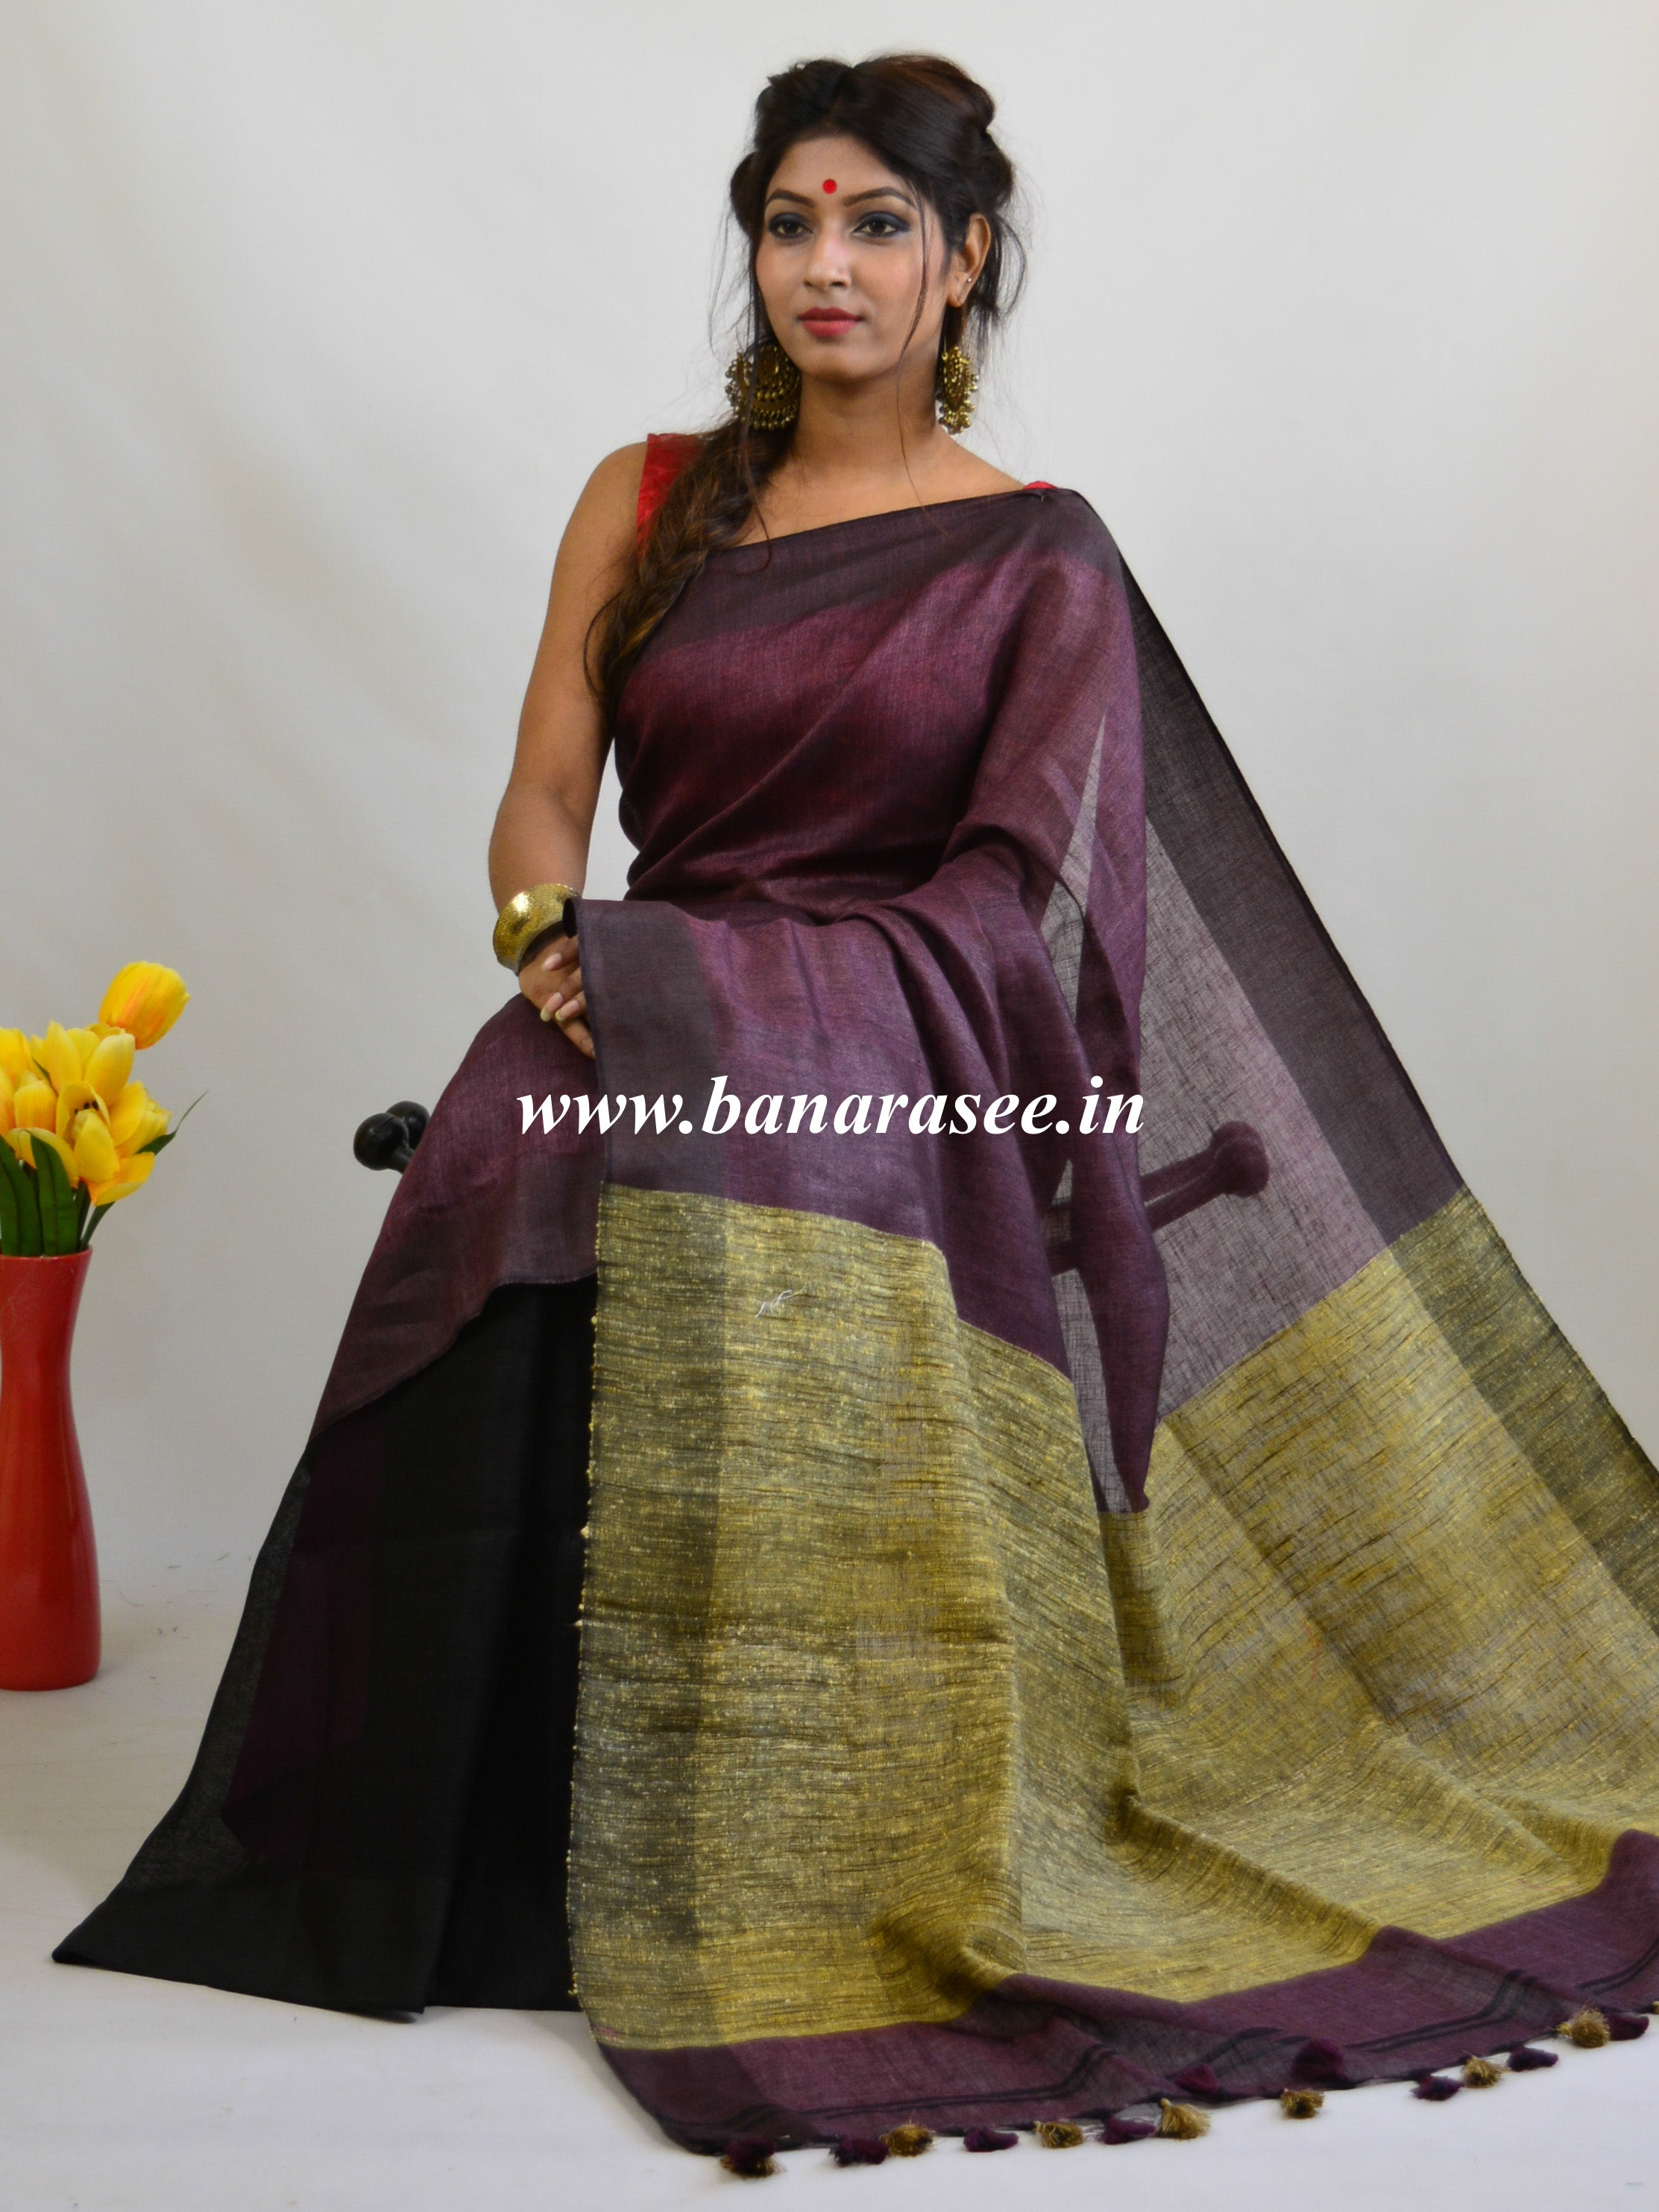 Banarasee Handloom Pure Linen Color Block Saree-Purple & Black